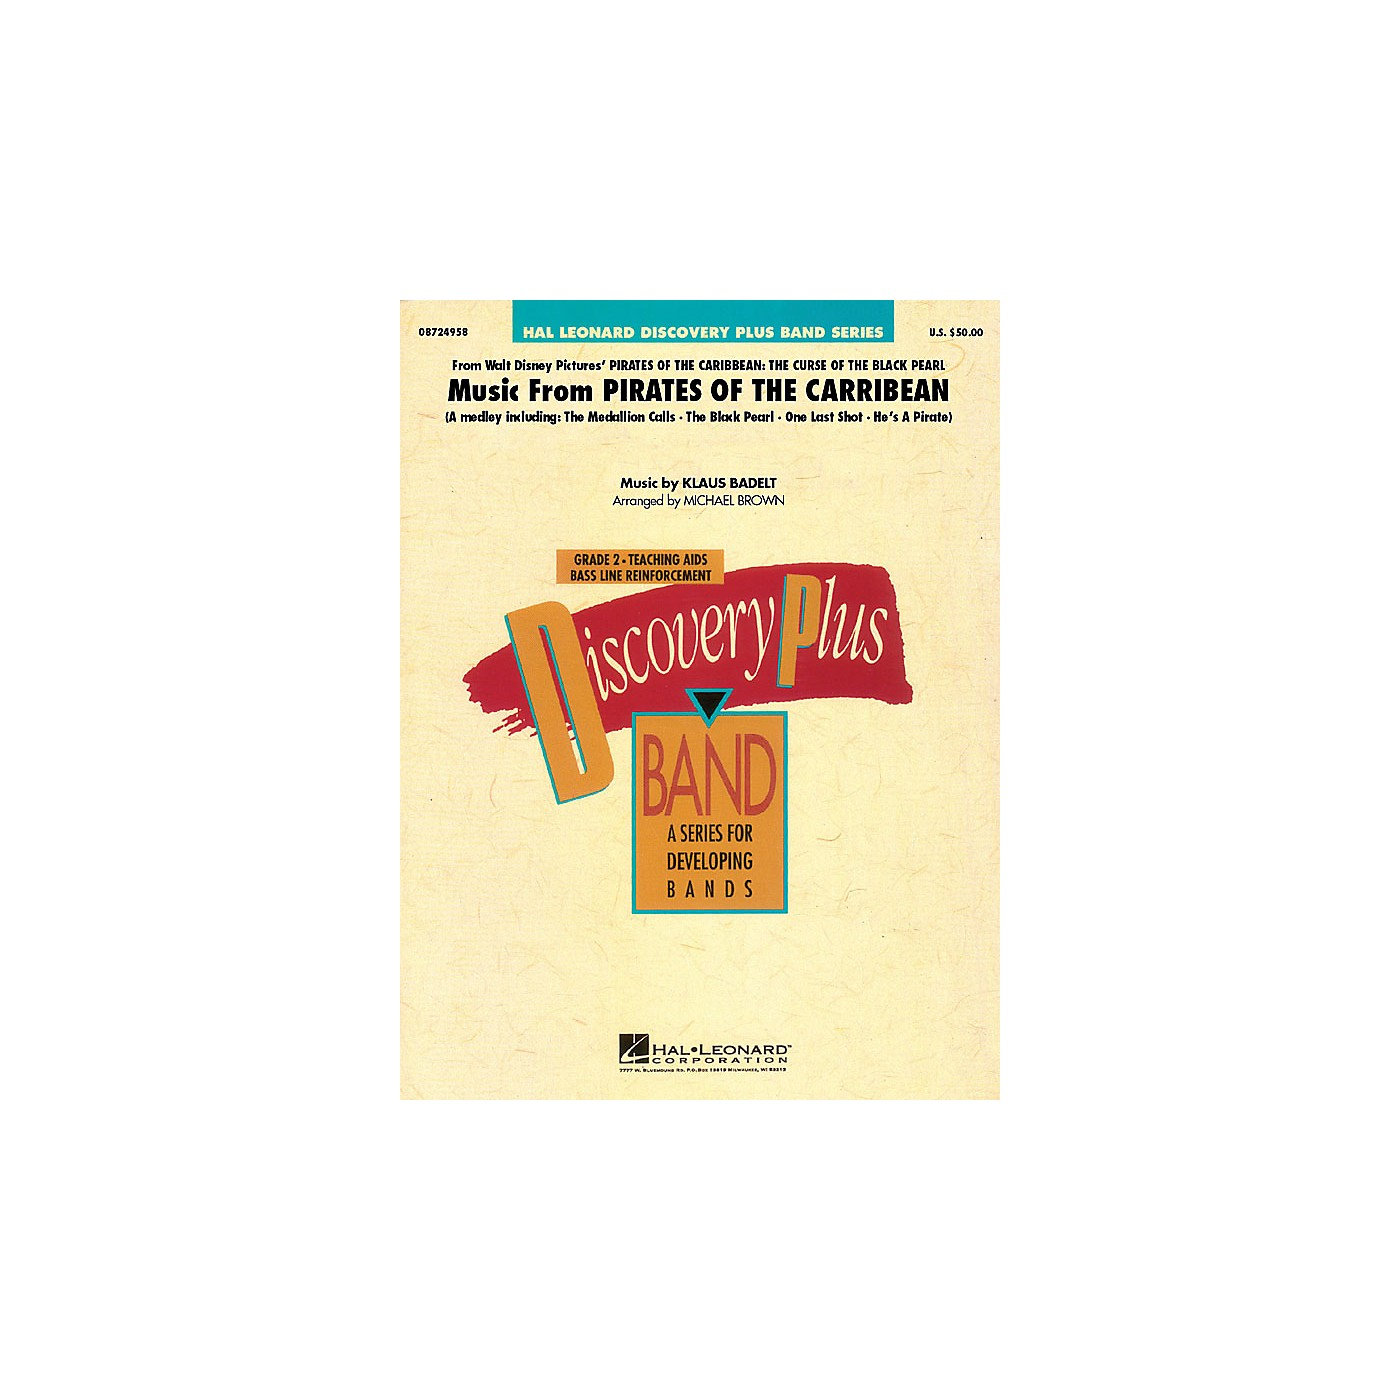 Hal Leonard Music from Pirates of the Caribbean - Discovery Plus Band Series Level 2 arranged by Michael Brown thumbnail